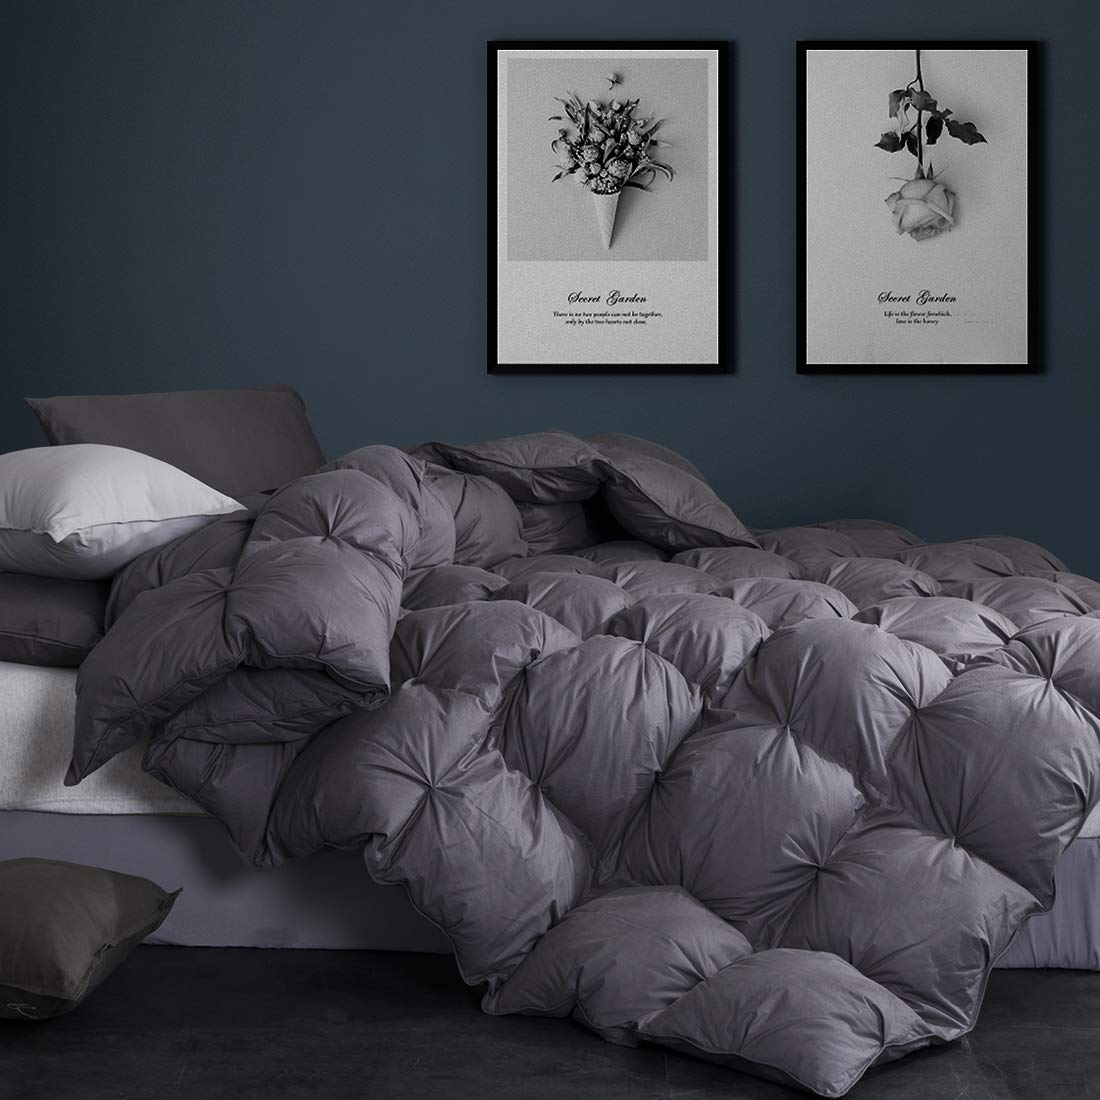 Goose Down Comforter Queen Size Duvet Insert 1200 Thread Count Hypoallergenic 100% Egyptian Cotton Cover 750+ Fill Power for All Seasons Cozy & Warm,Pinch Pleat Grey Comforter Queen-90x90Inches